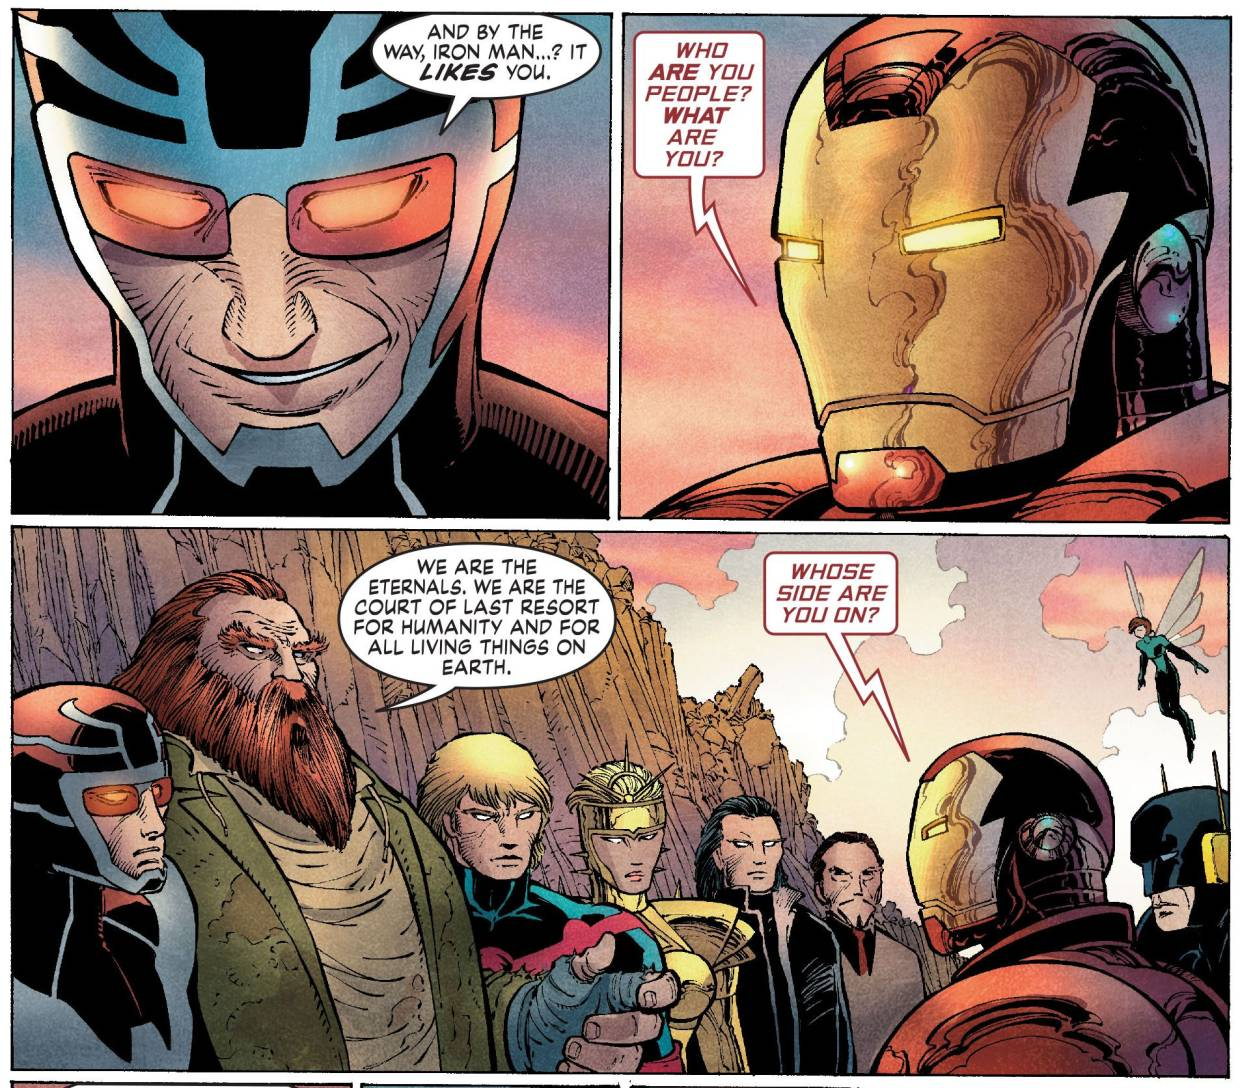 Ah, if only Iron Man were still alive in the MCU; we could have had scenes like this one.